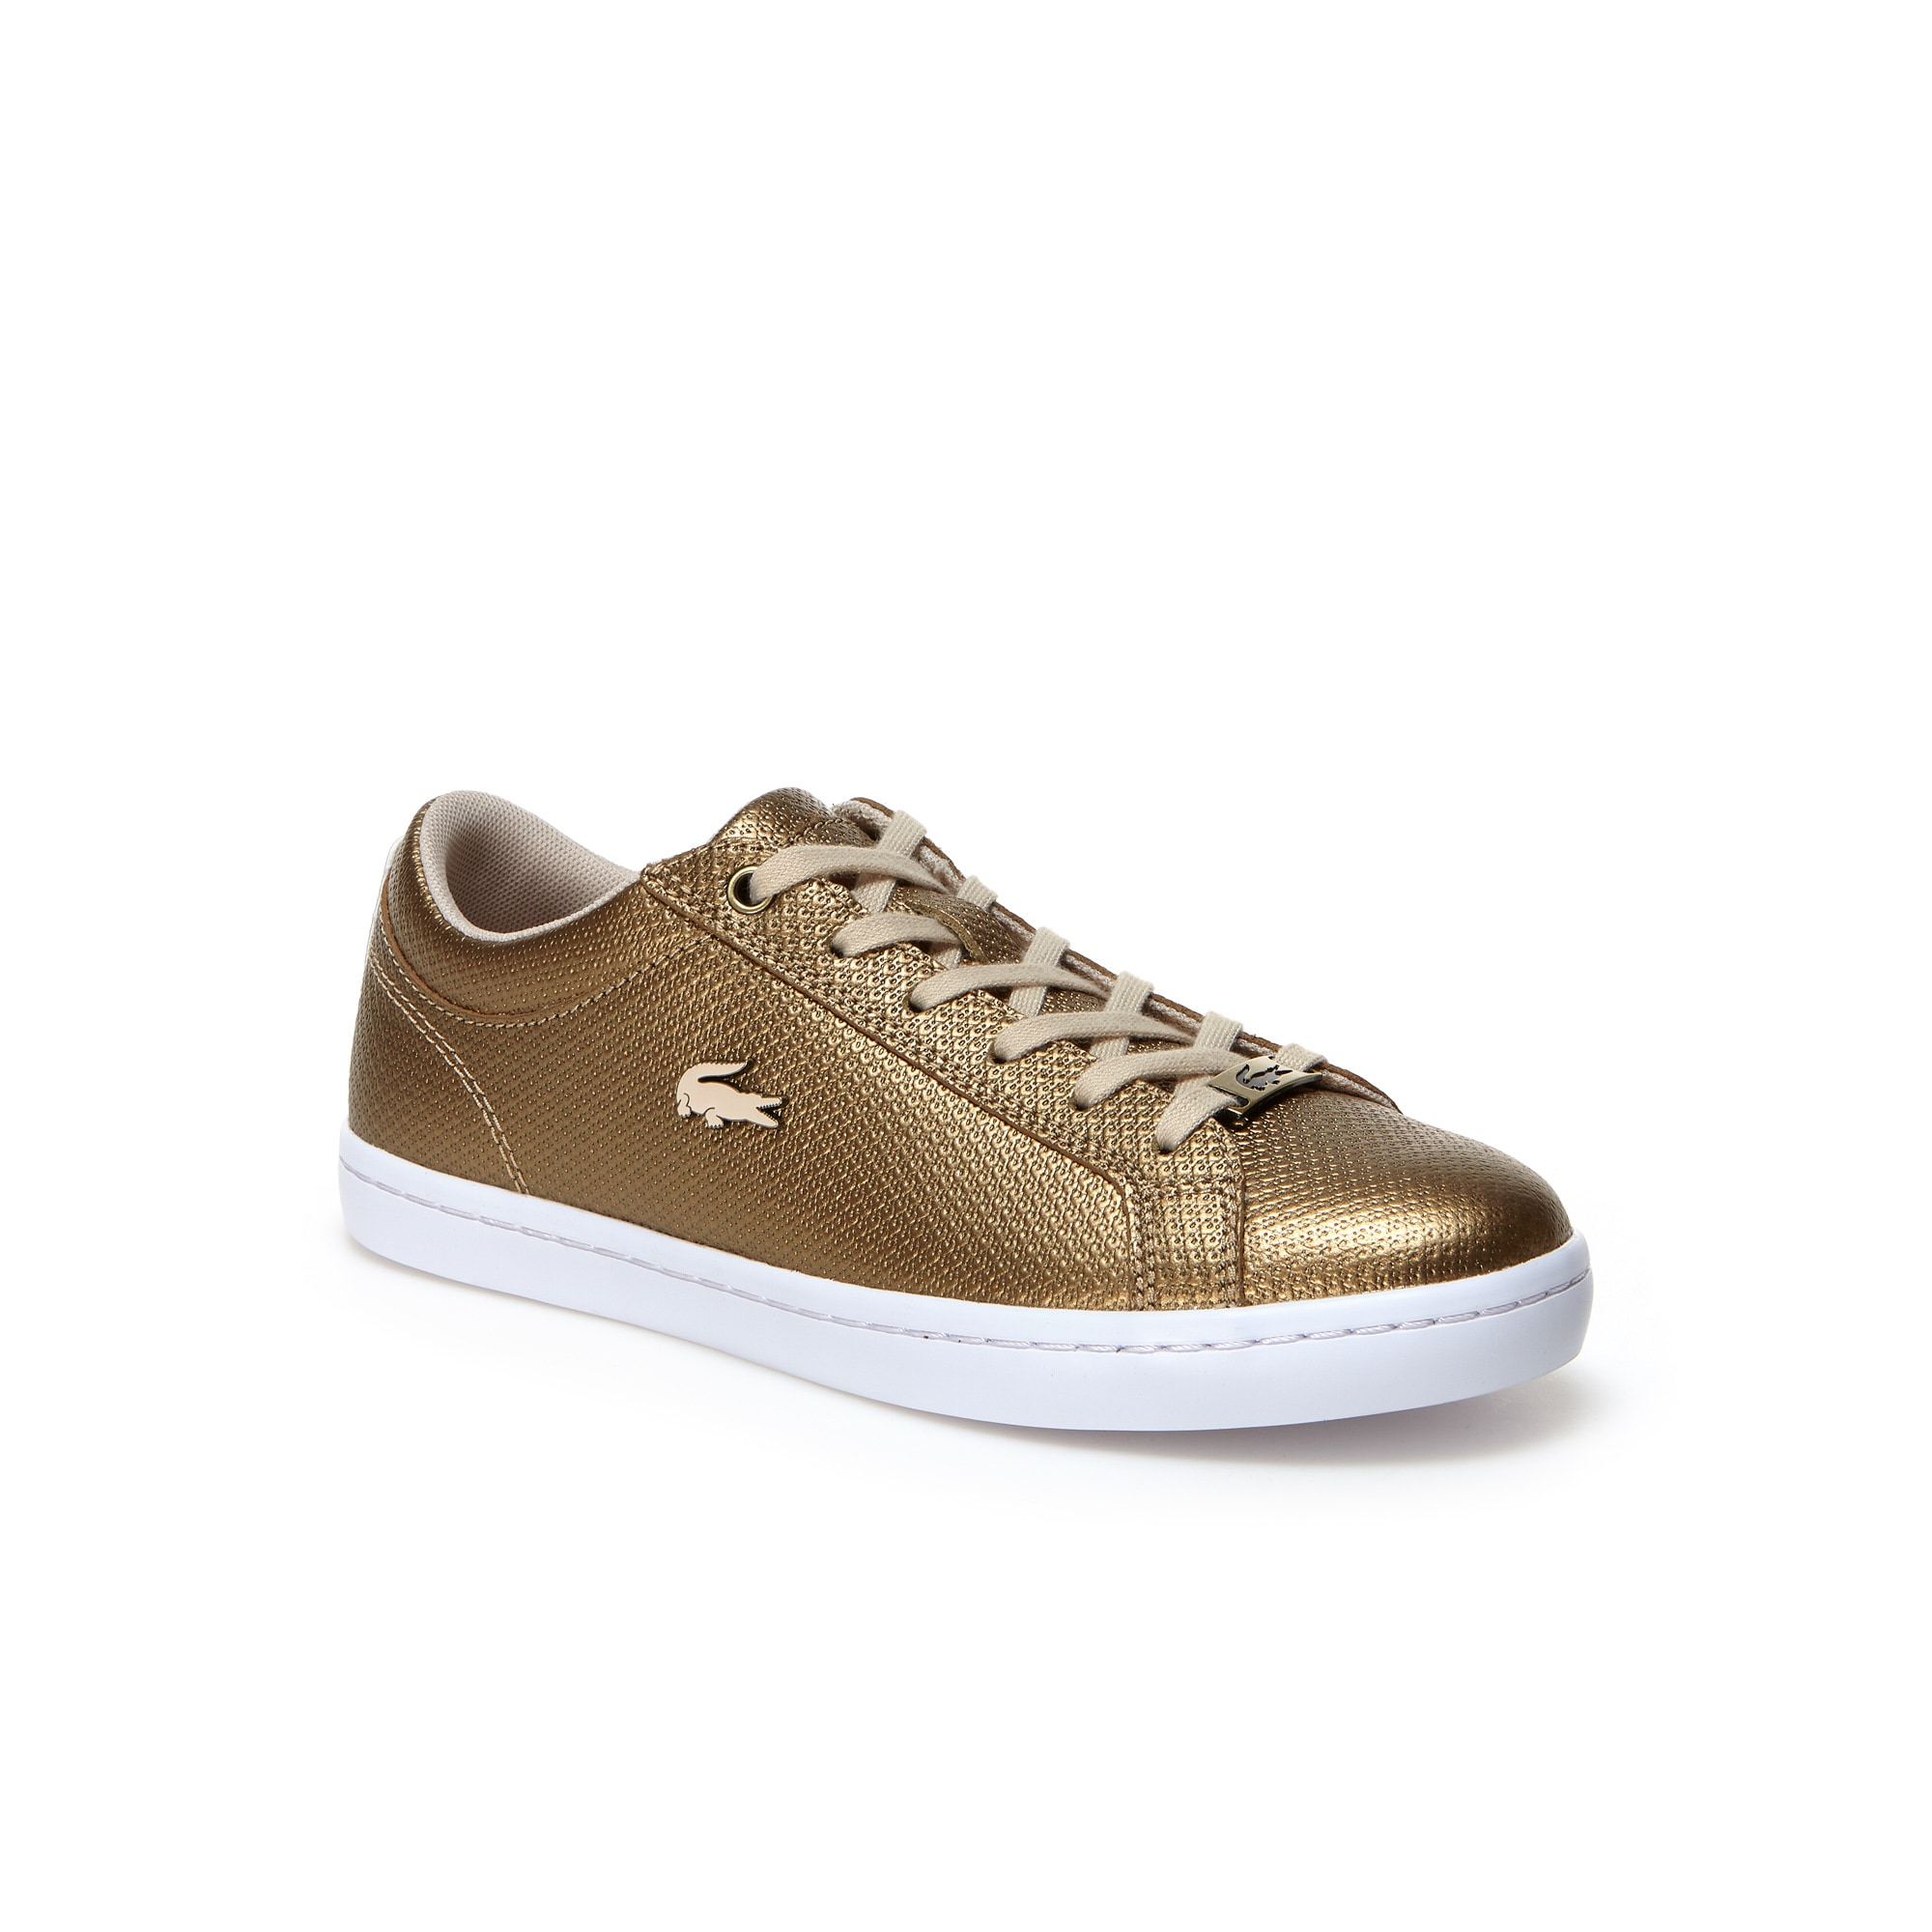 Women's Straightset Leather Trainers with Piqué mesh linings